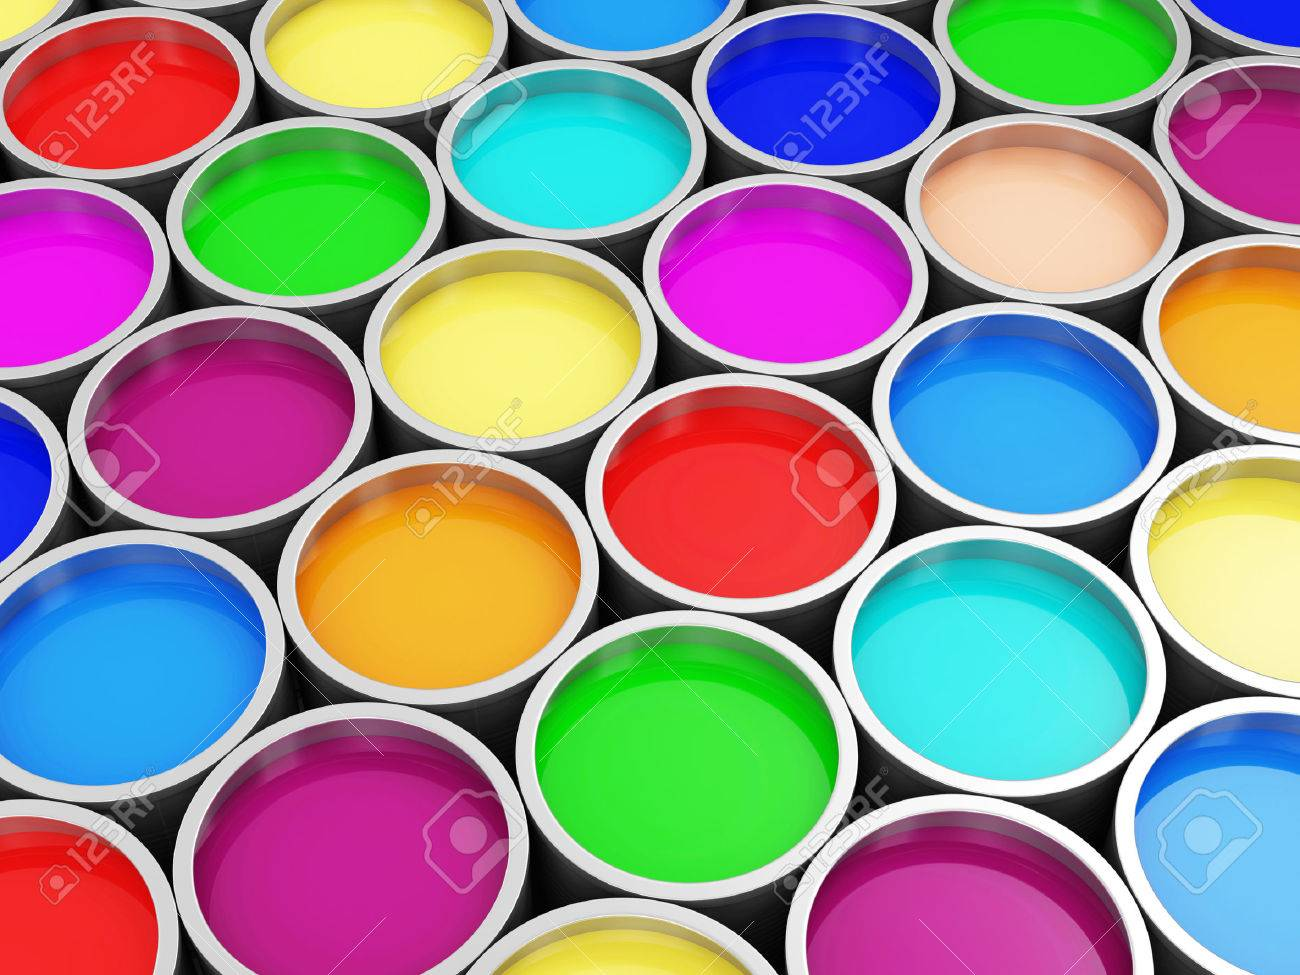 heap of colorful paint cans abstract background stock photo picture